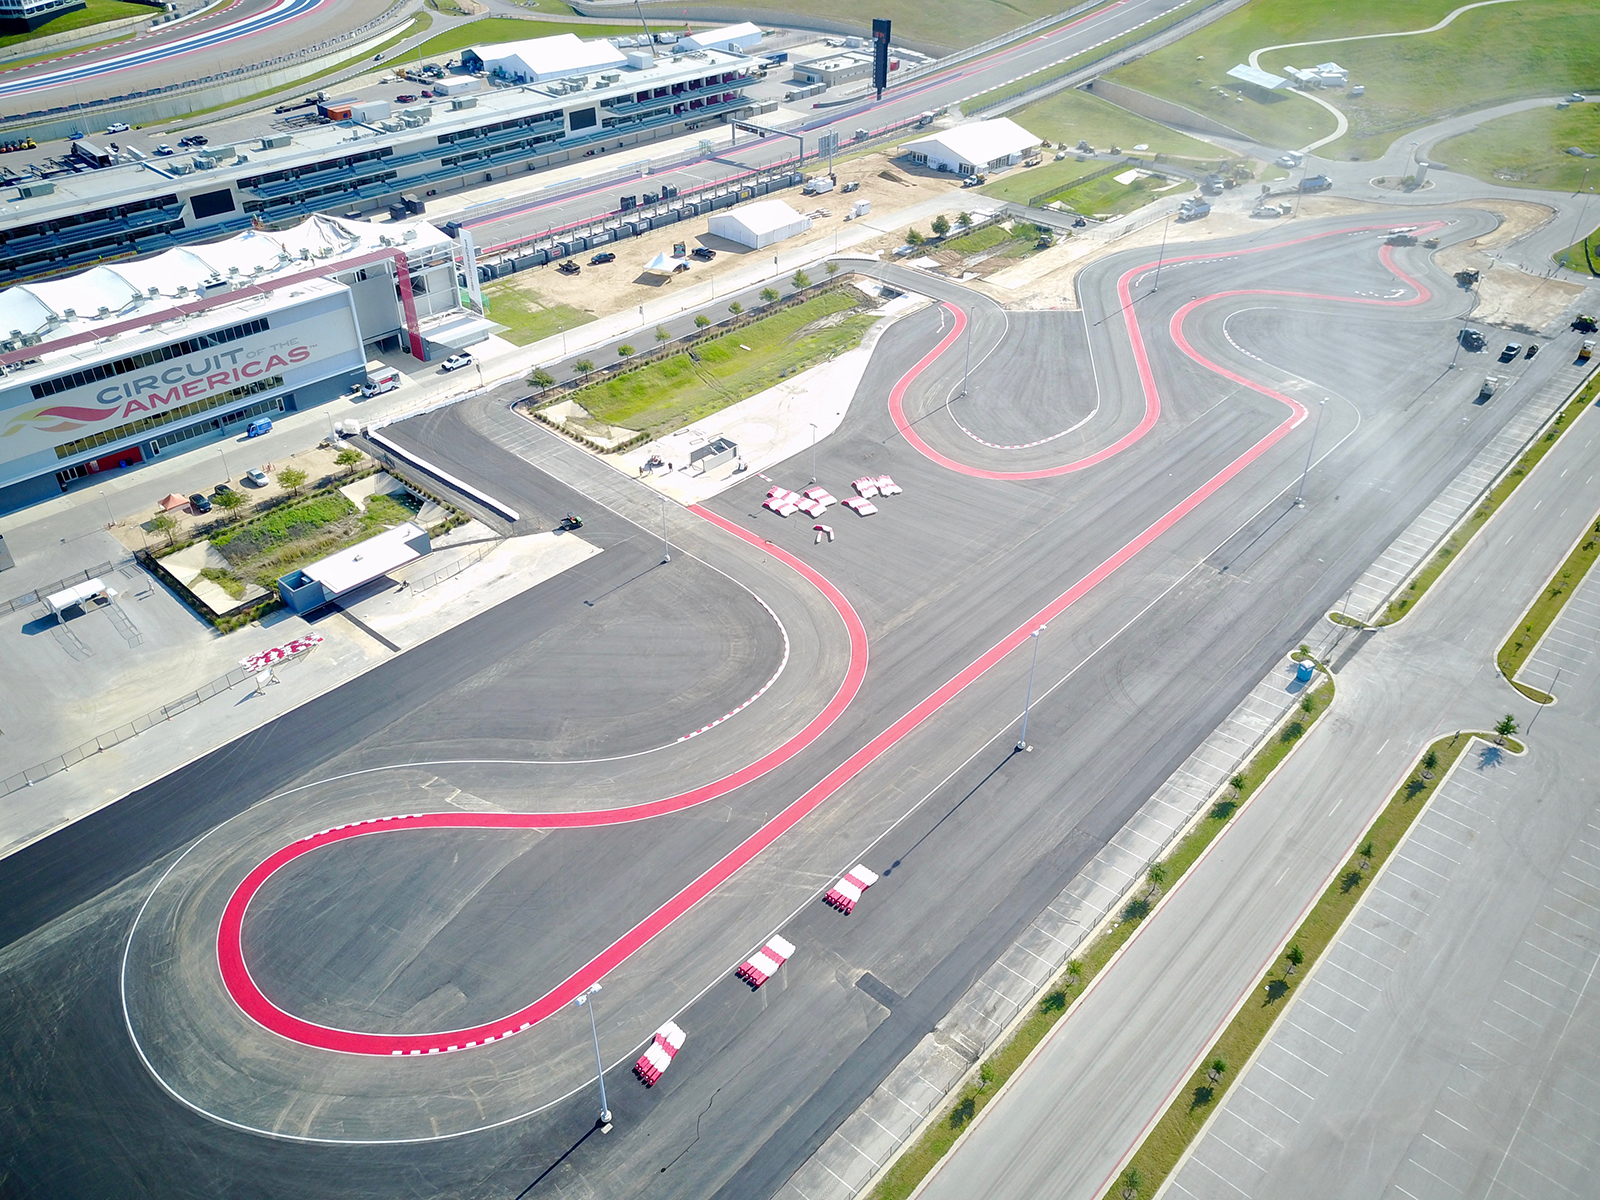 Karting Circuit Of The Americas